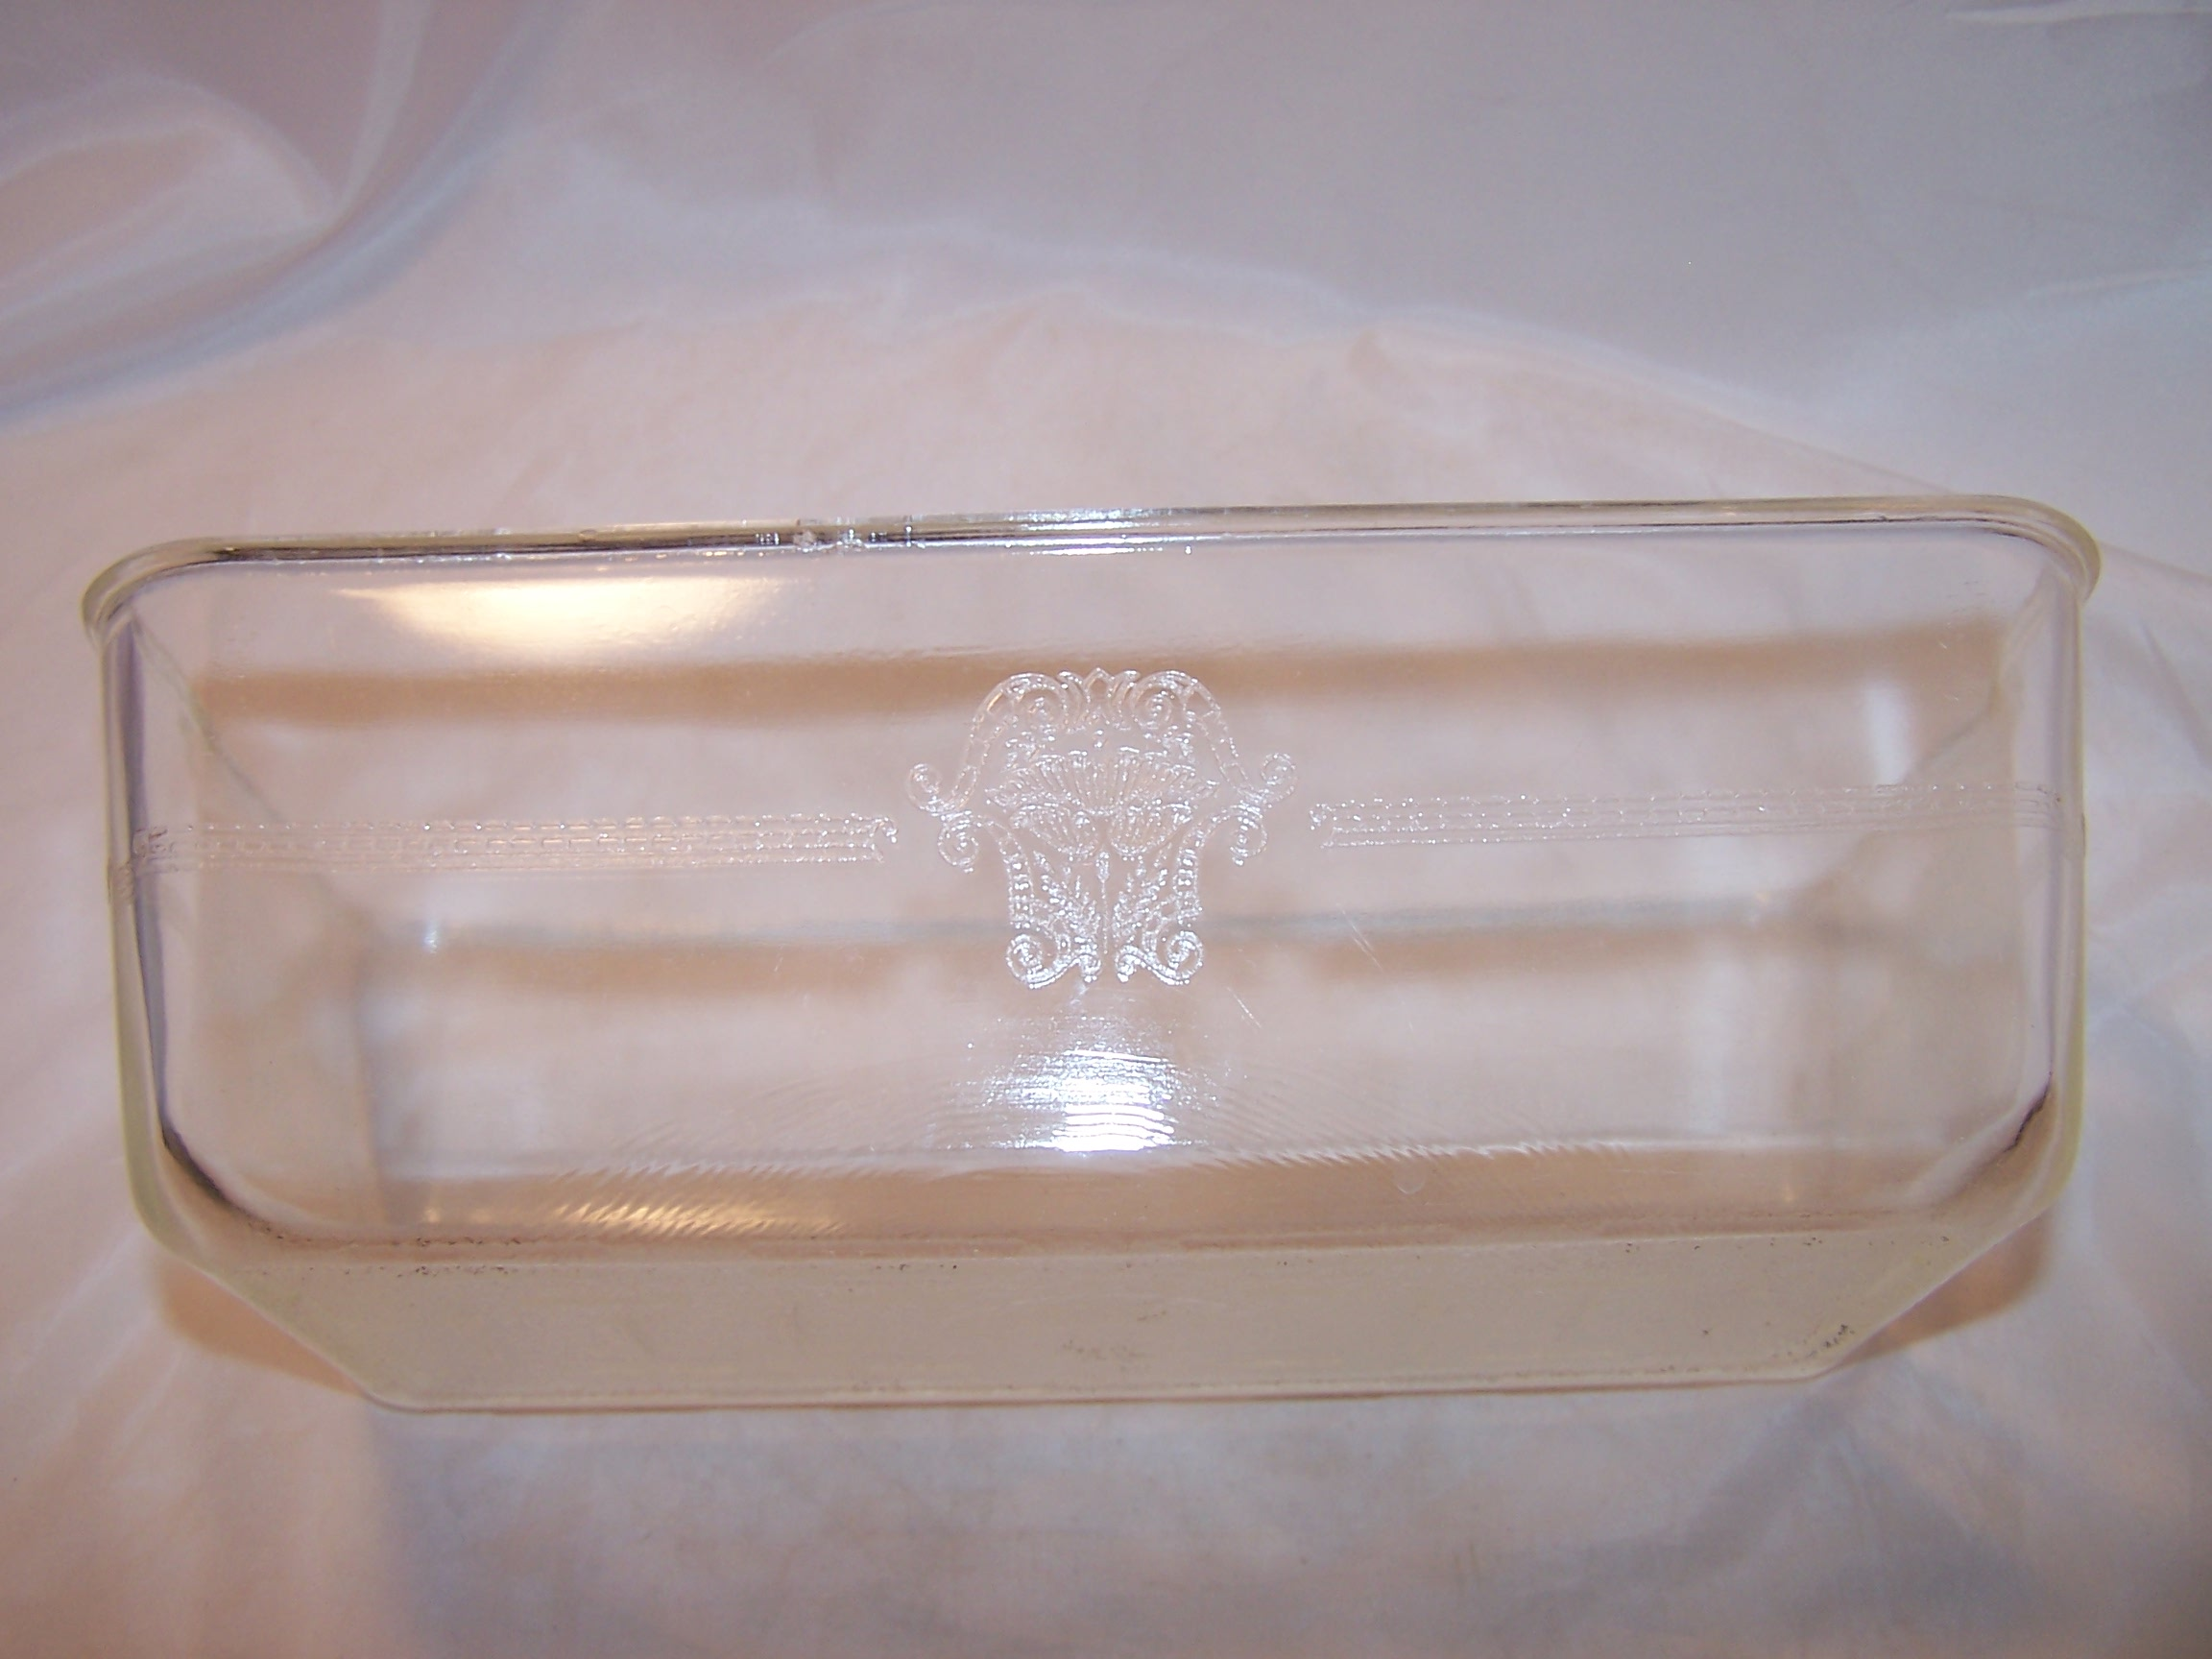 Image 9 of Glasbake Bake Set, Embossed, Elegant, 1911